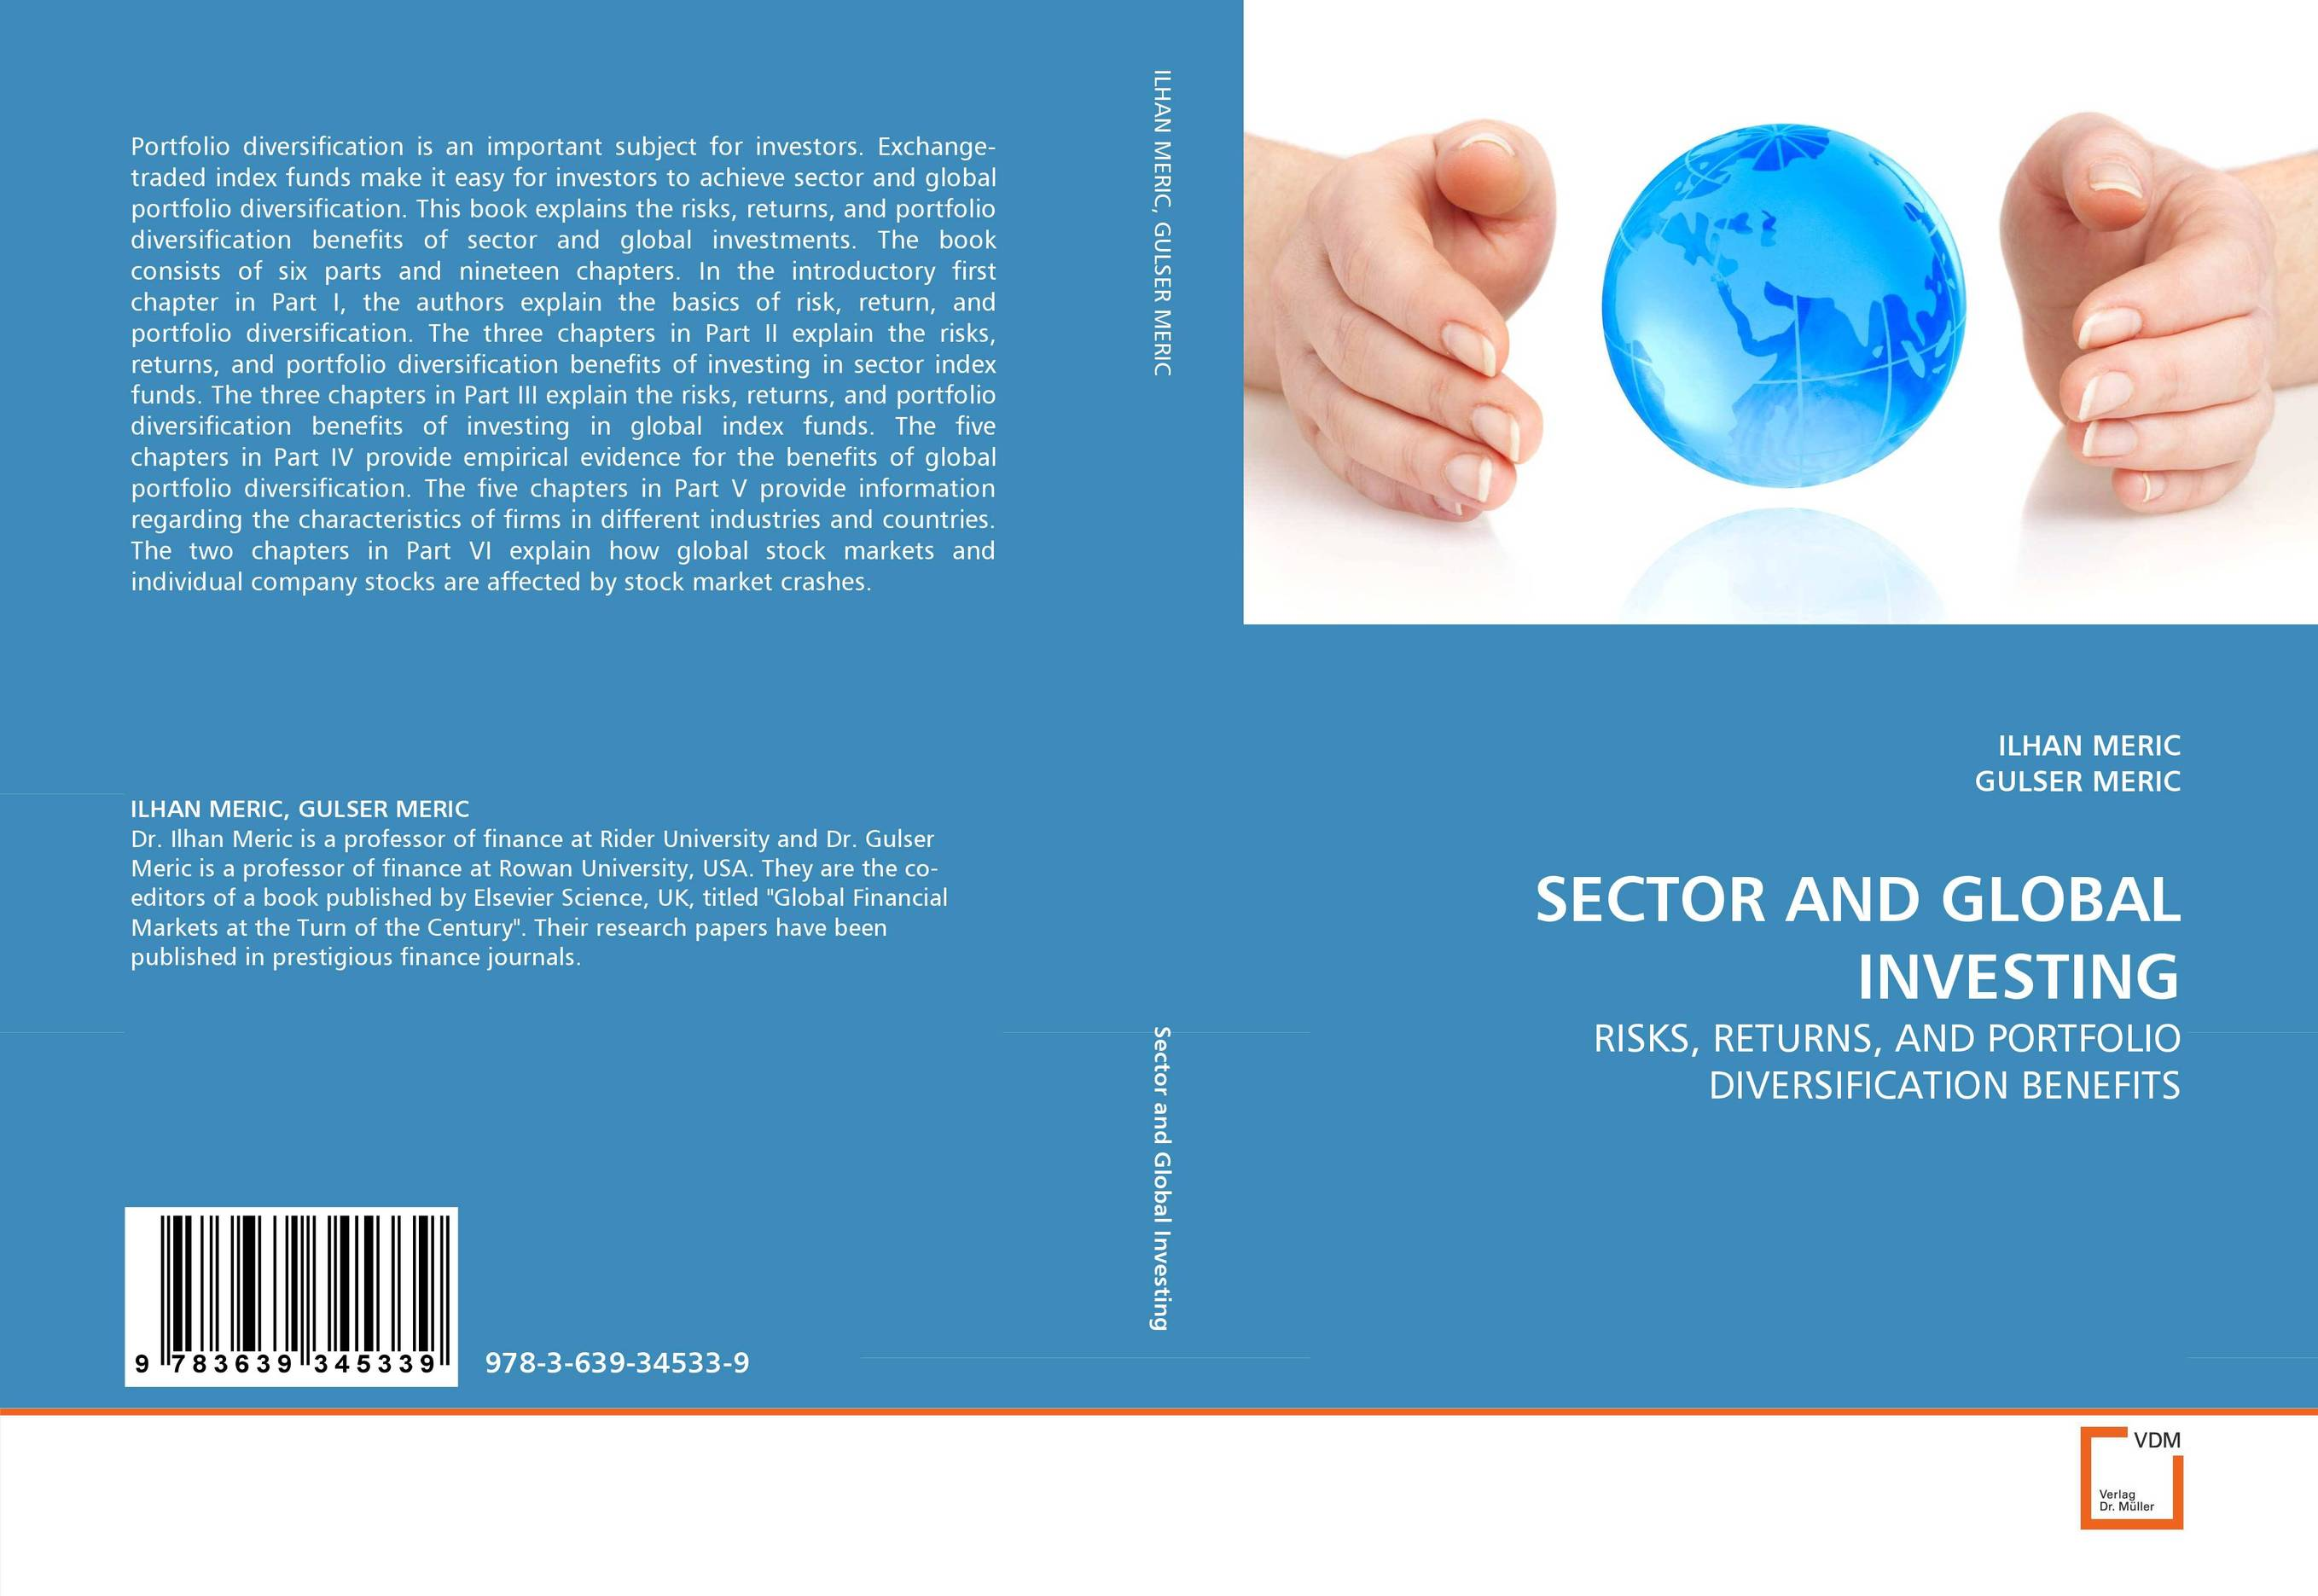 SECTOR AND GLOBAL INVESTING